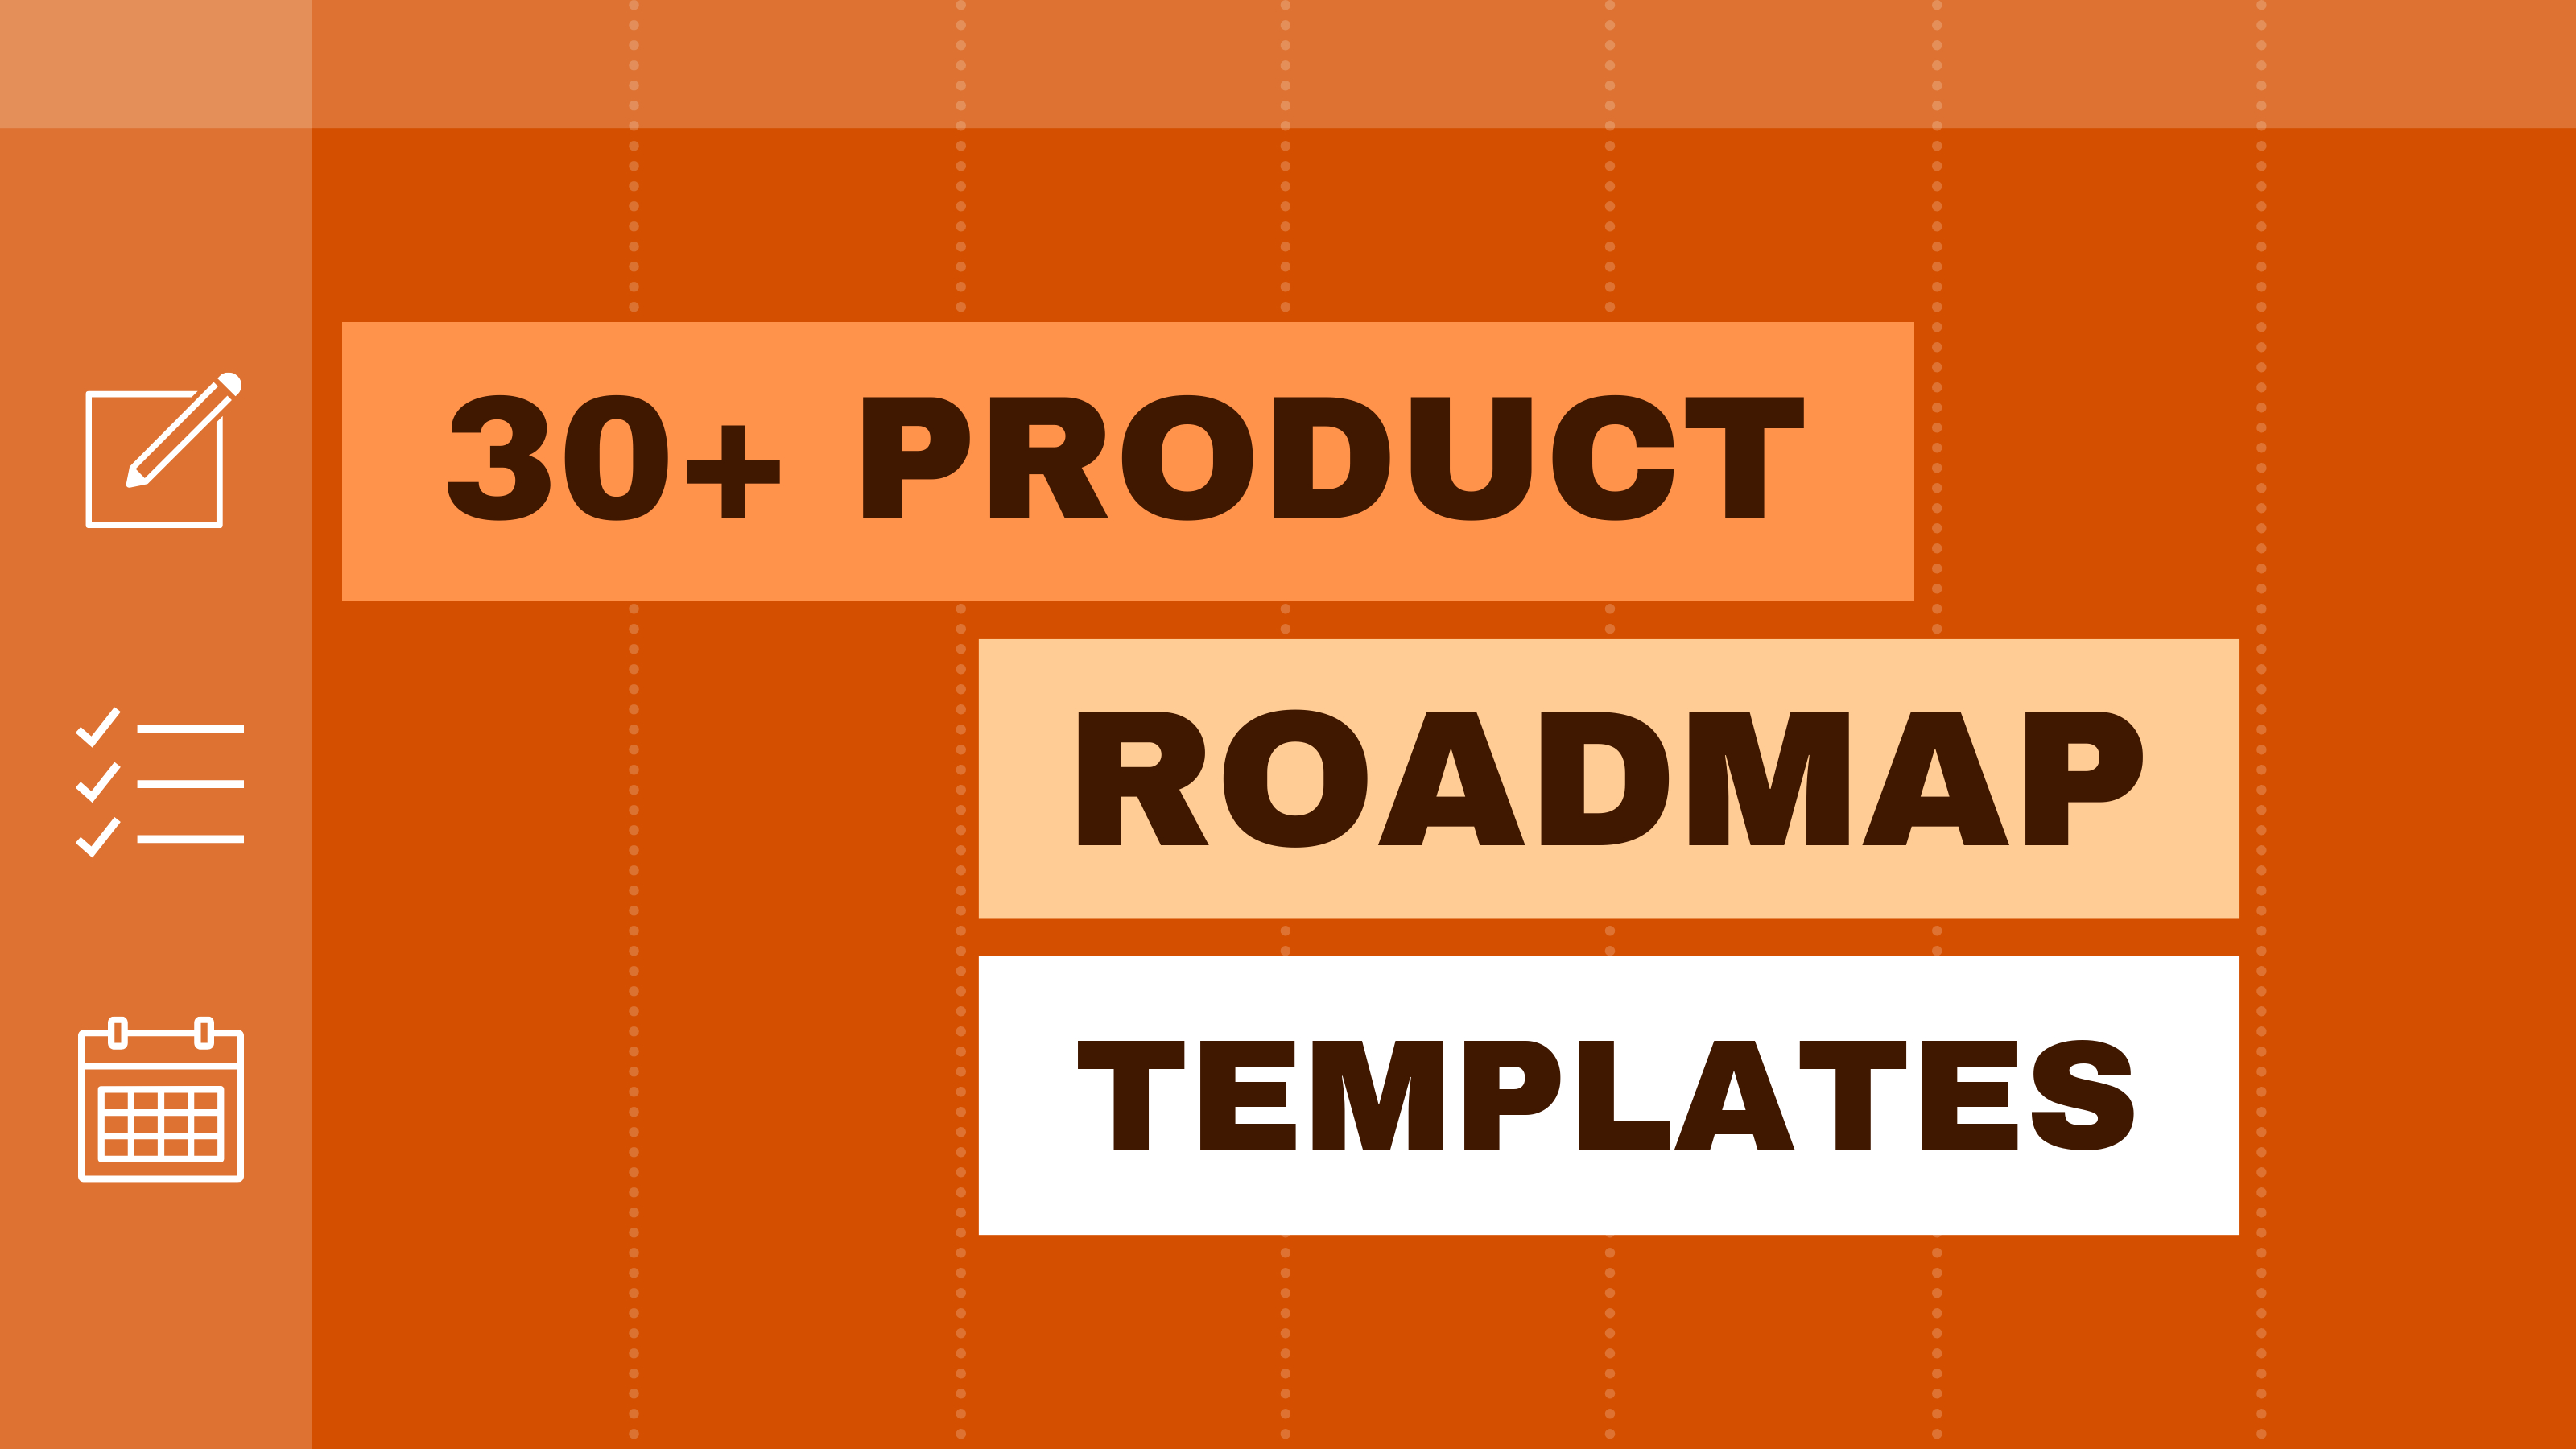 30+ Product Roadmap Templates, Examples And Tips - Venngage inside A Few Of My Favorite Things Template